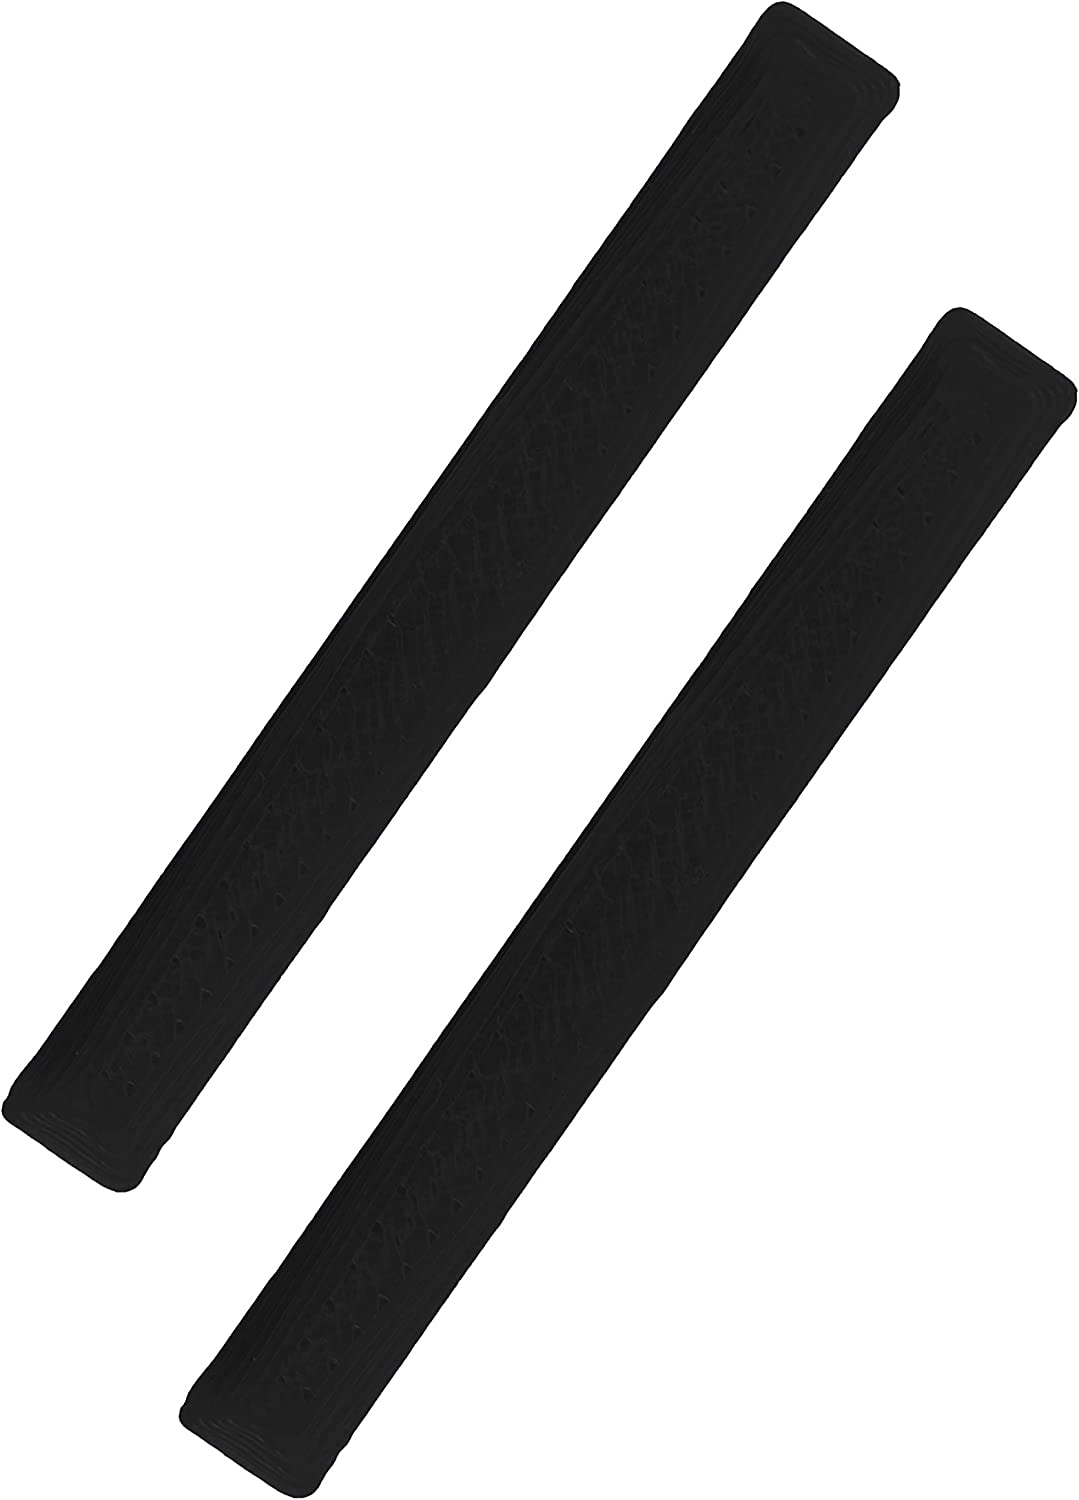 Black Onyx Colorway Set of 2 Fingerboard Rails Designed /& Made in The USA Teak Tuning Gem Edition Adhesive Board Rails Set of 2 Rails